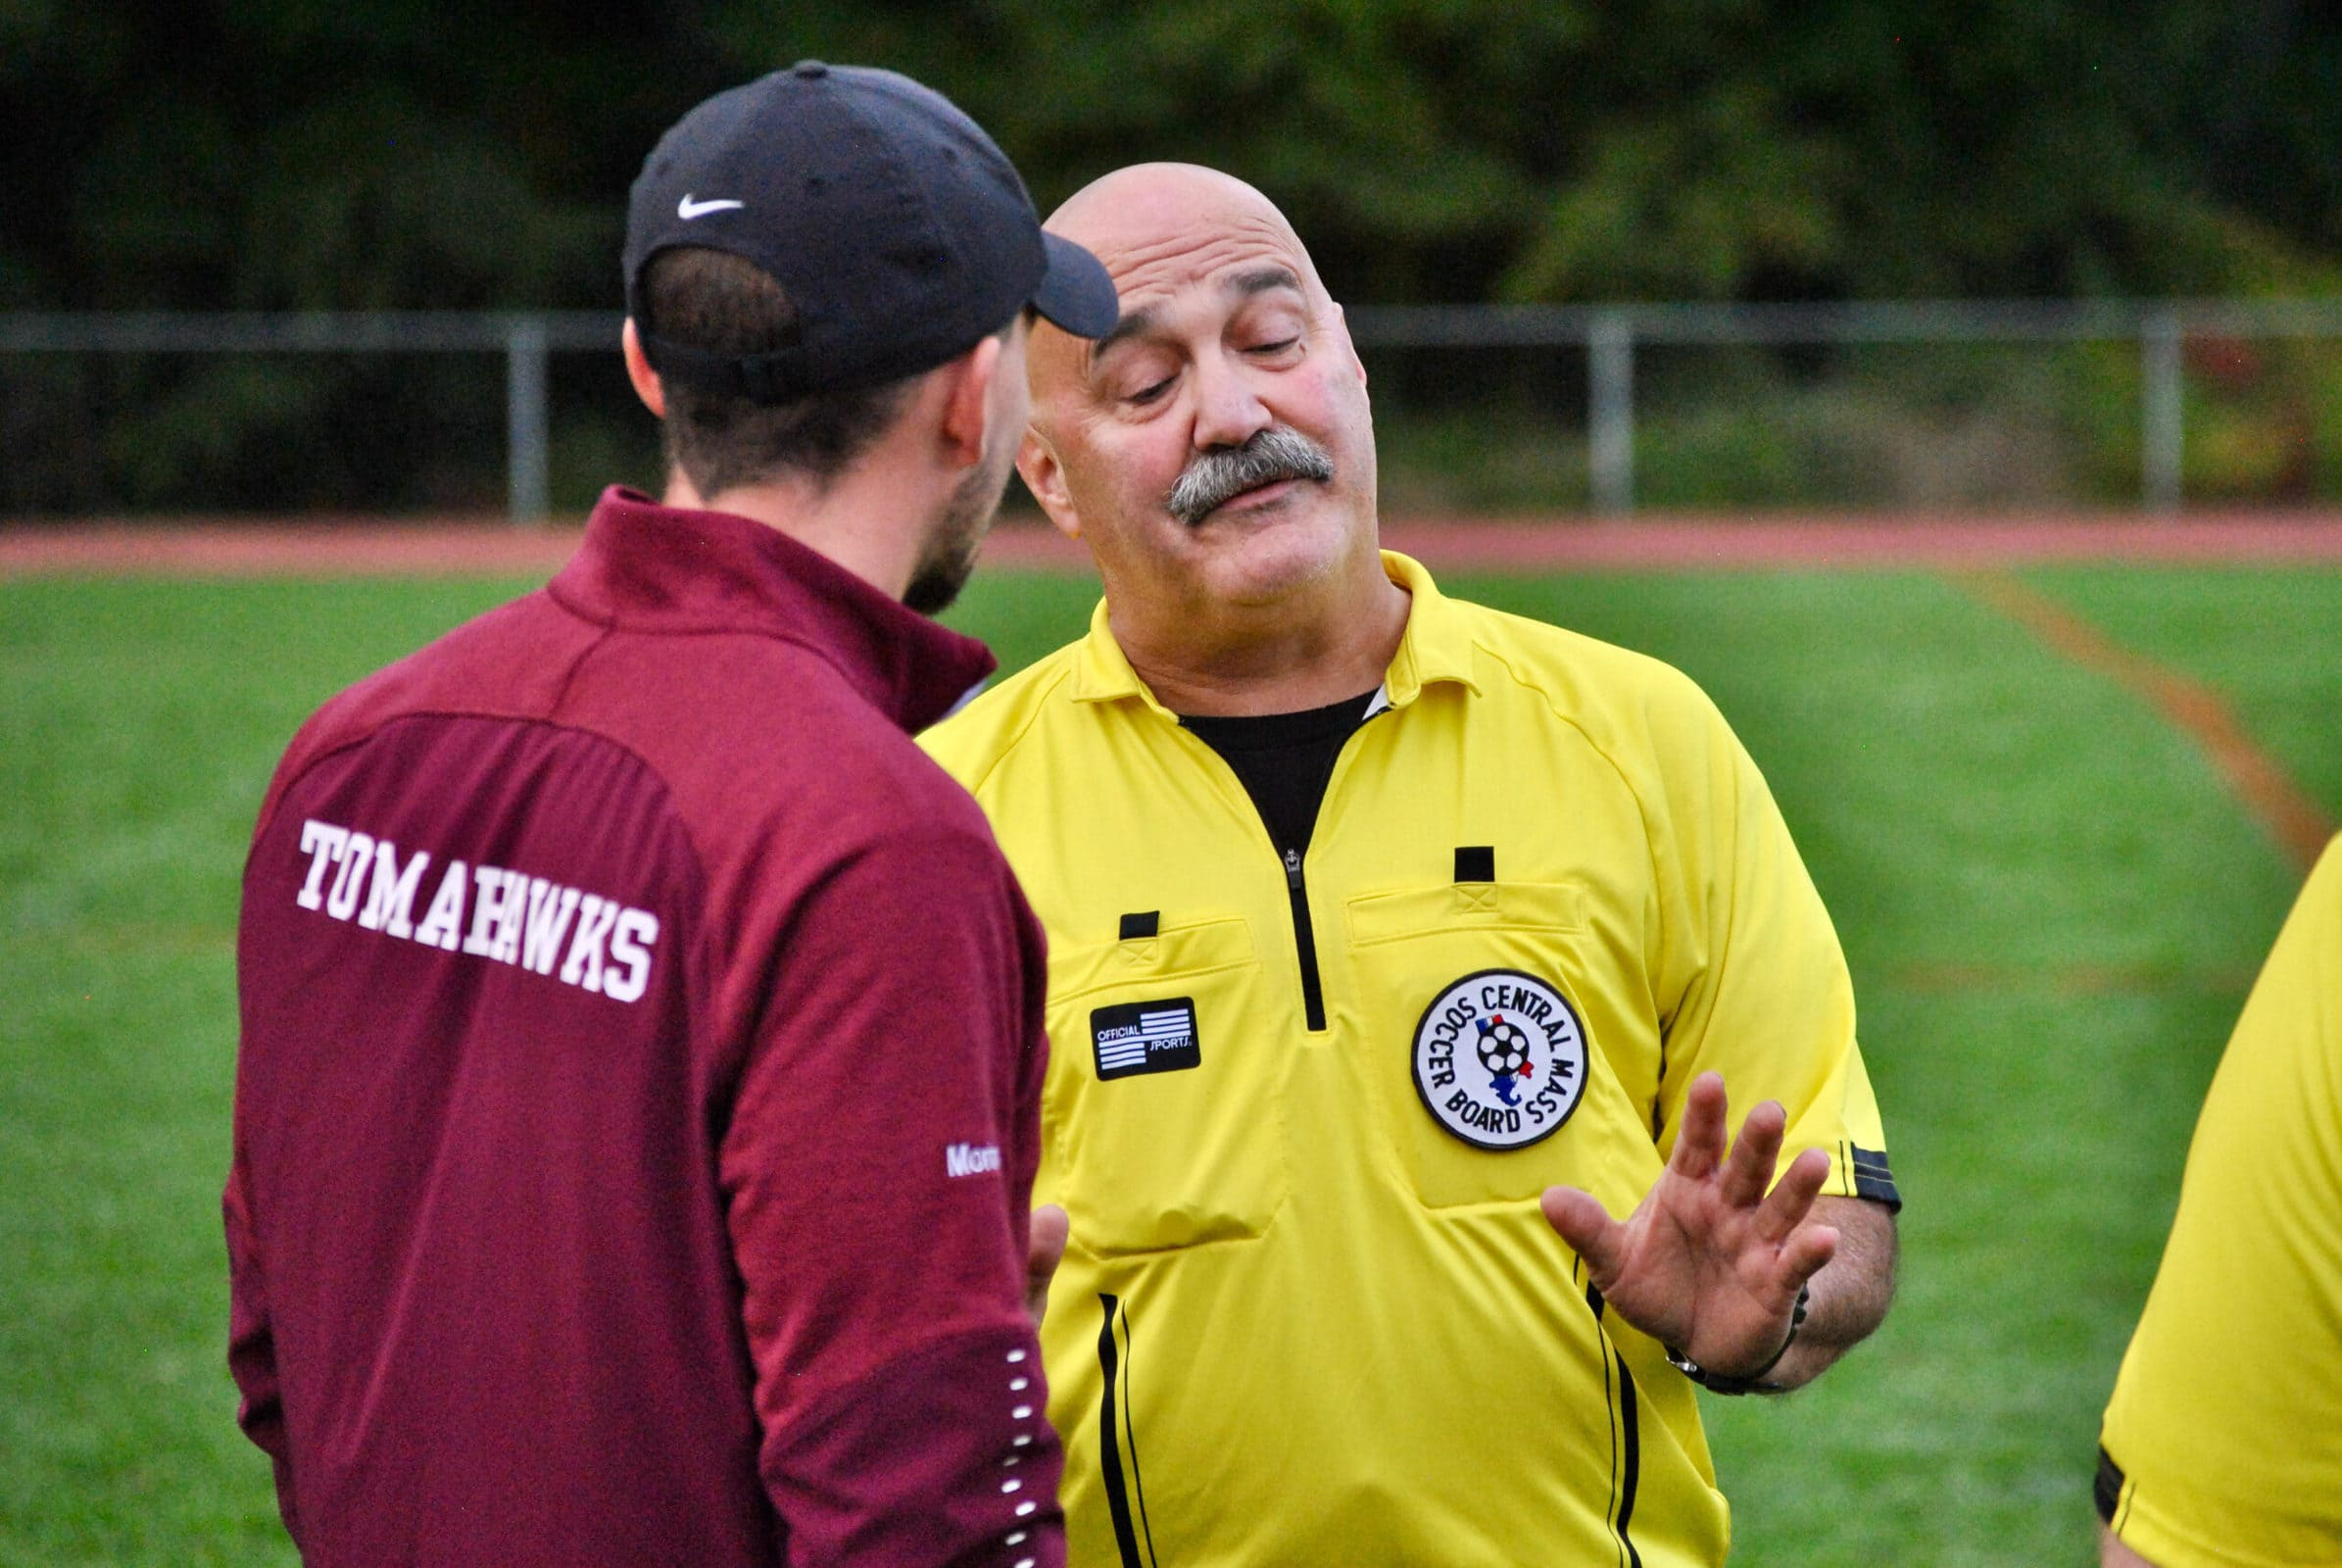 An Algonquin coach debates a series of first half calls with an official during halftime of his team's game against Tantasqua on Oct. 9.